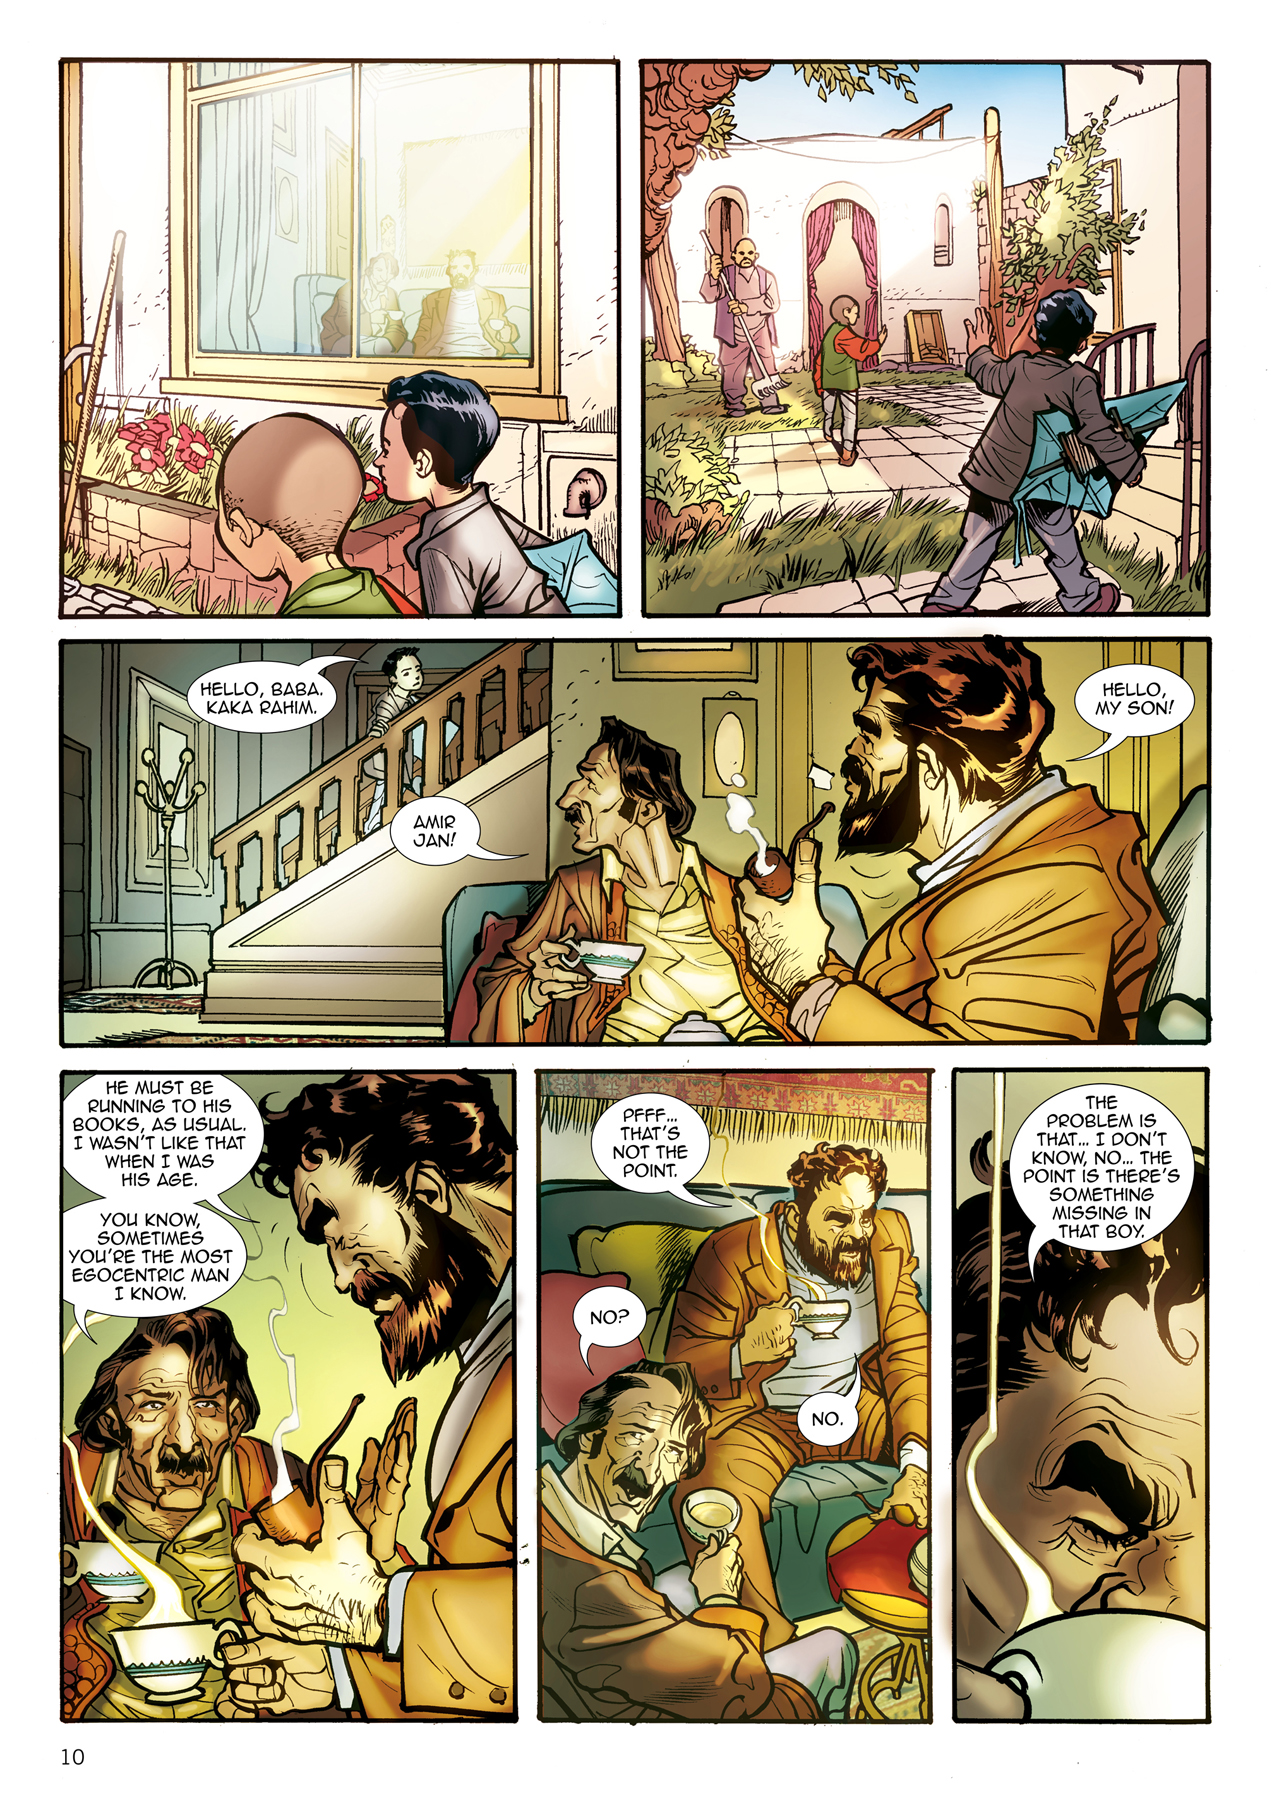 the kite runner graphic novel khaled hosseini 9781594485473 a look inside the kite runner graphic novel click on images to enlarge